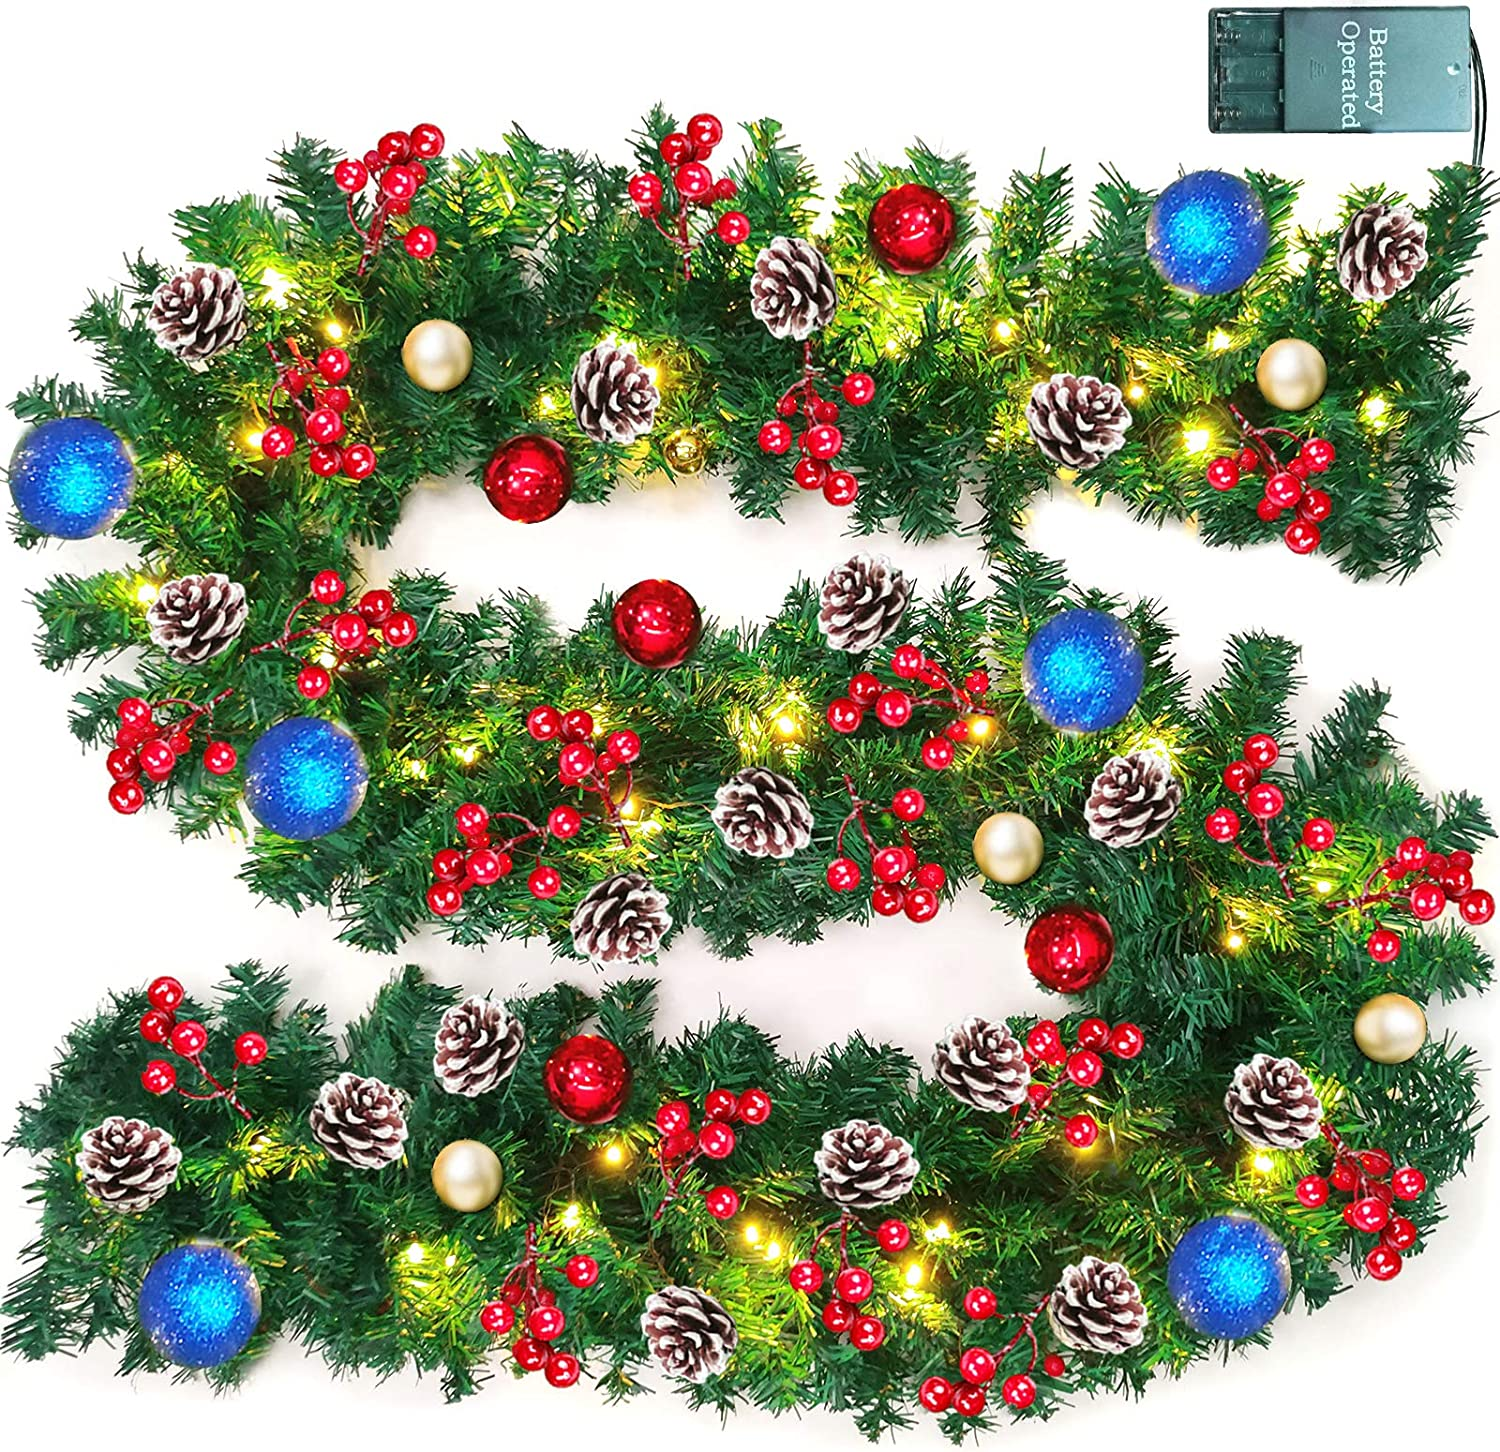 TURNMEON 9 FT Christmas Garland Decor with Lights Glitter Ball Ornaments, Battery Operated Xmas Garland Wreath with 280 Thick Branch 90 Red Berry Pine Cone,Indoor Outdoor Home Christmas Decor (Blue)